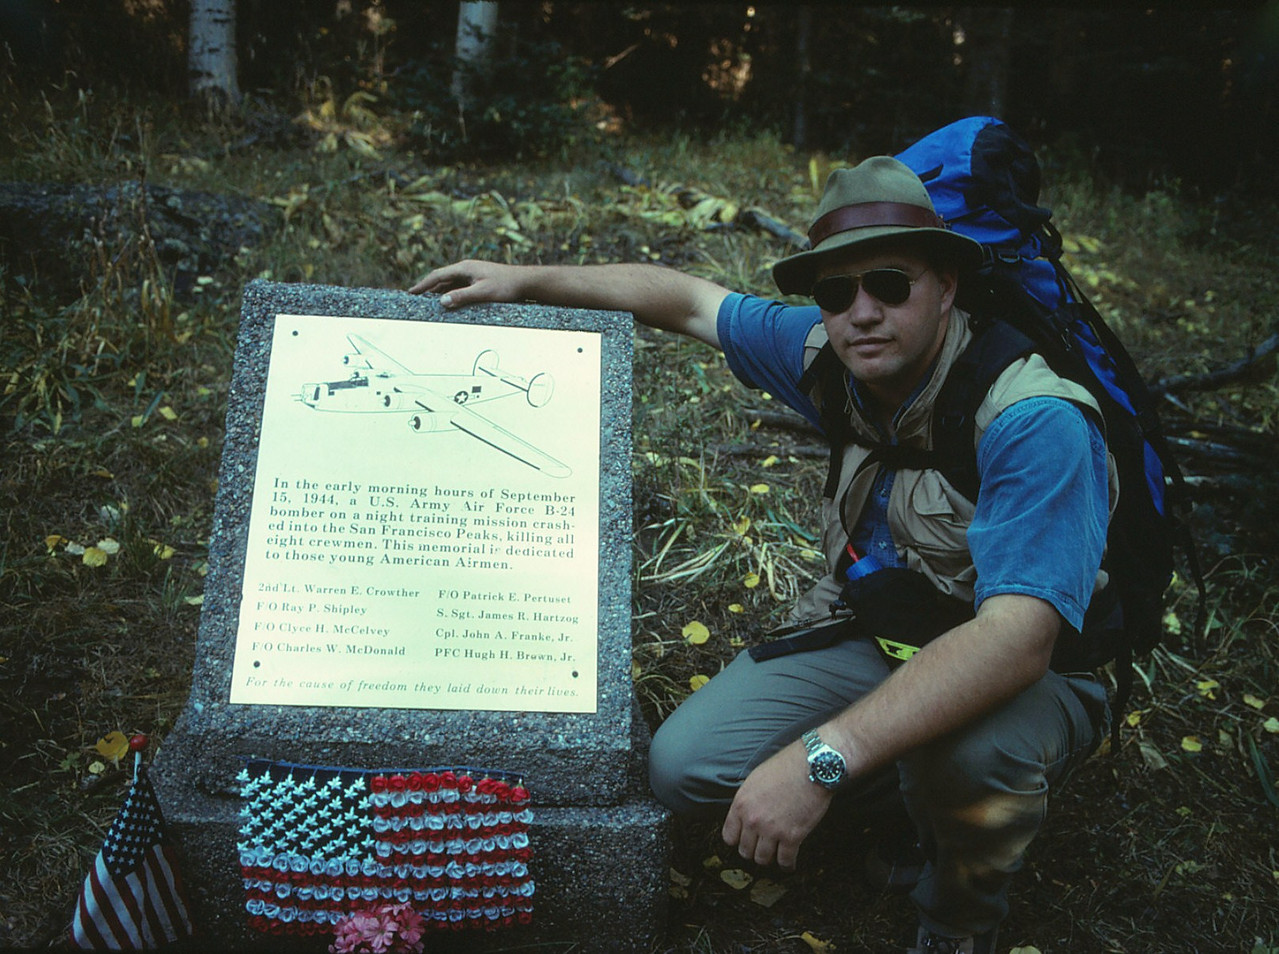 A memorial to the crew is located near the trailhead at the Snowbowl Lodge. In 1991, the memorial was recently placed.<br /> <br /> IN MEMORY OF<br /> <br /> 2nd. Lt. Warren E. Crowther (Pilot)<br /> F/O Ray P. Shipley <br /> F/O Clyce H. McCelvey<br /> F/O Charles W. McDonald<br /> F/O Patrick E. Pertuset<br /> S.Sgt. James R. Hartzog<br /> Cpl. John A. Franke Jr.<br /> Pfc. Hugh H. Brown